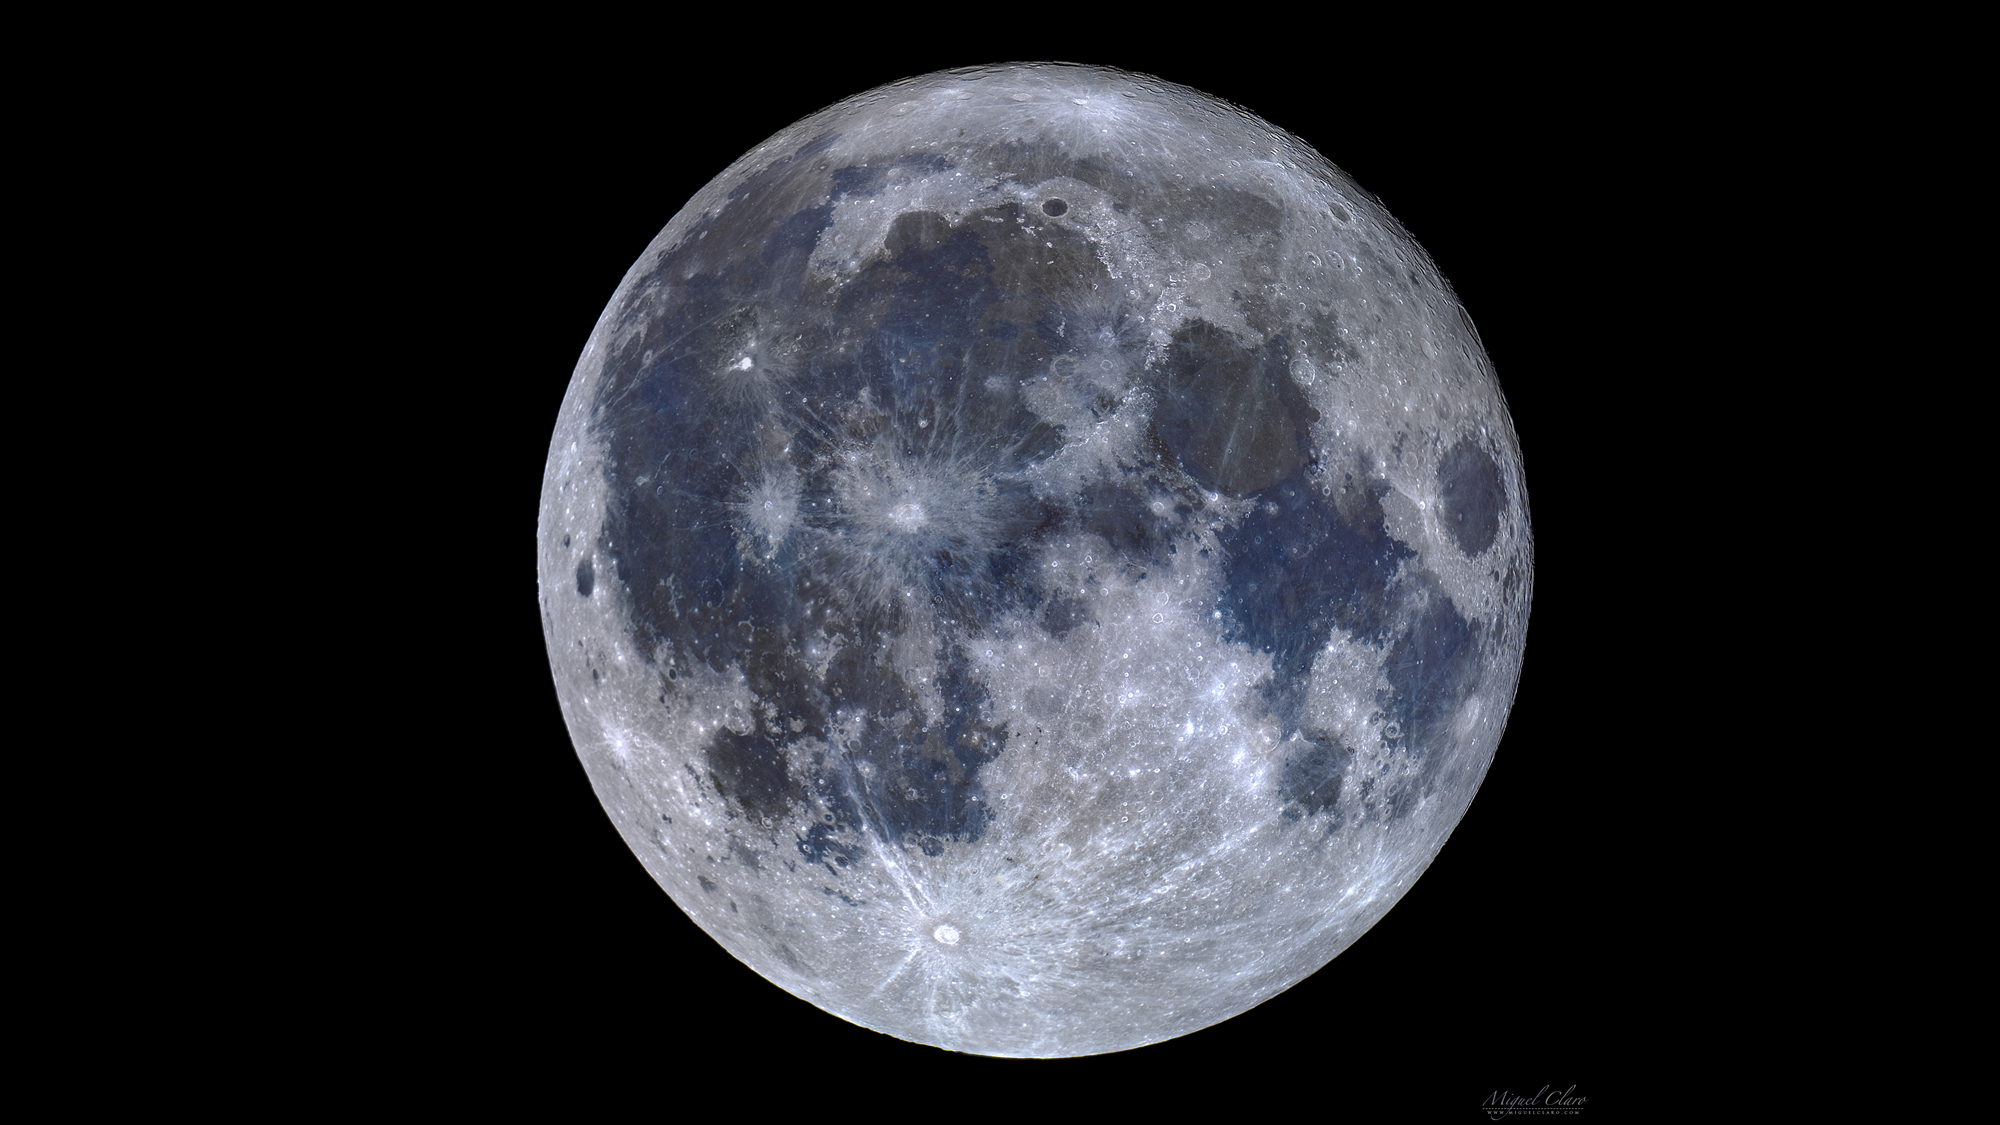 Color Mosaic of the Full Moon Reveals Blue 'Seas' of Titanium (Photo) |  Space